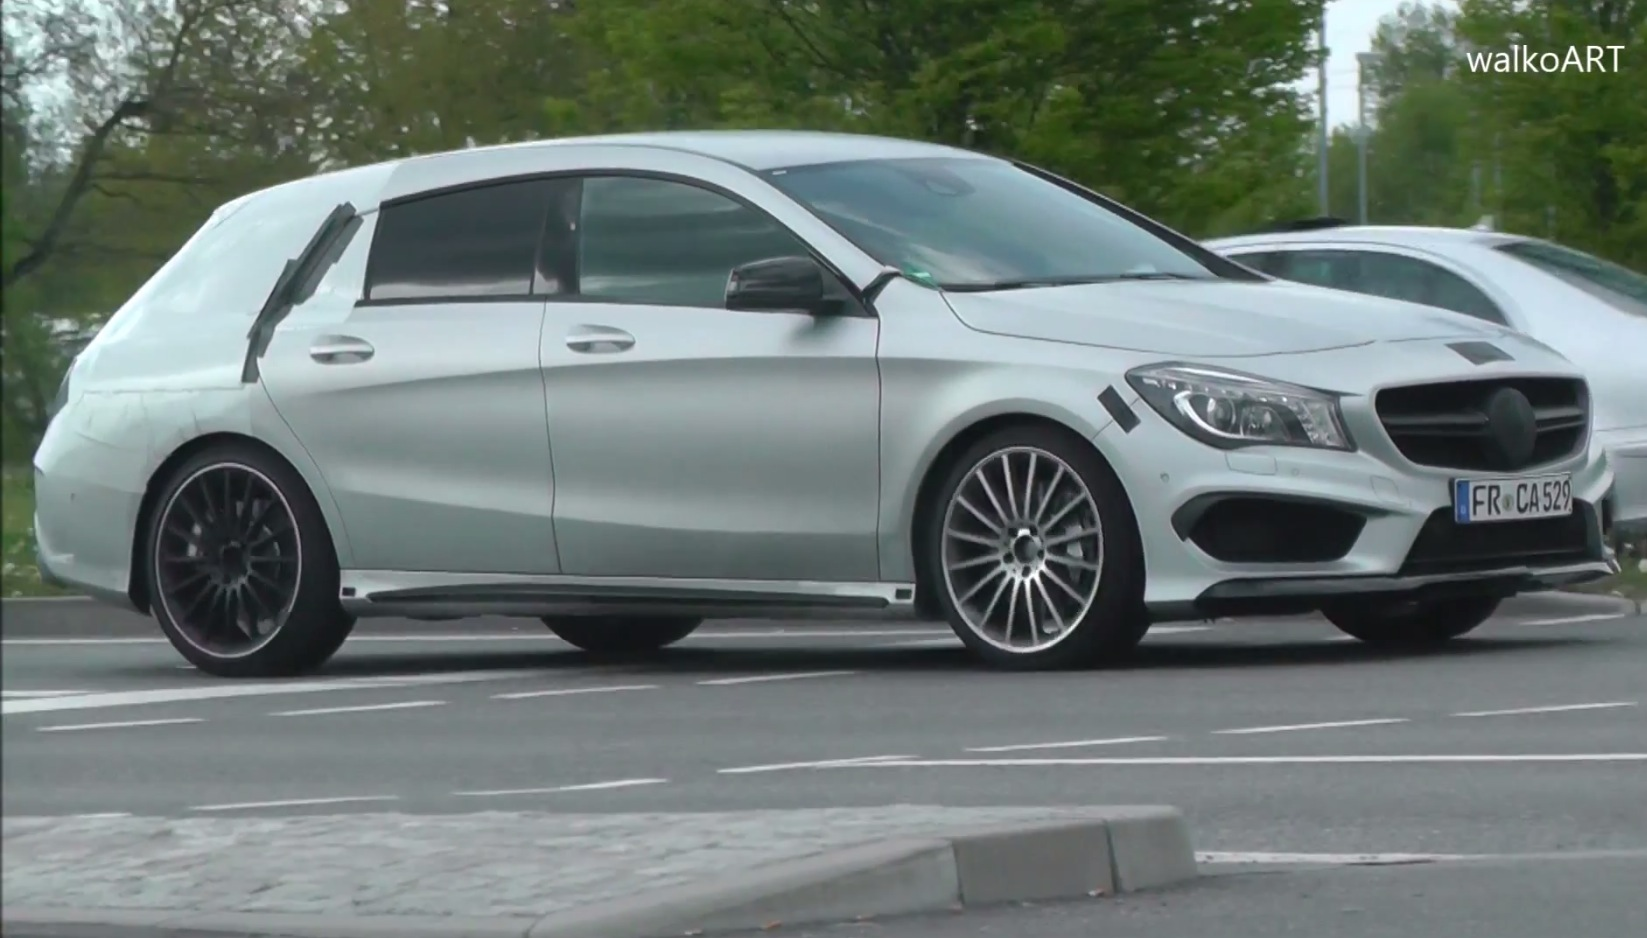 2015 cla 45 amg shooting brake x117 caught near stuttgart autoevolution. Black Bedroom Furniture Sets. Home Design Ideas